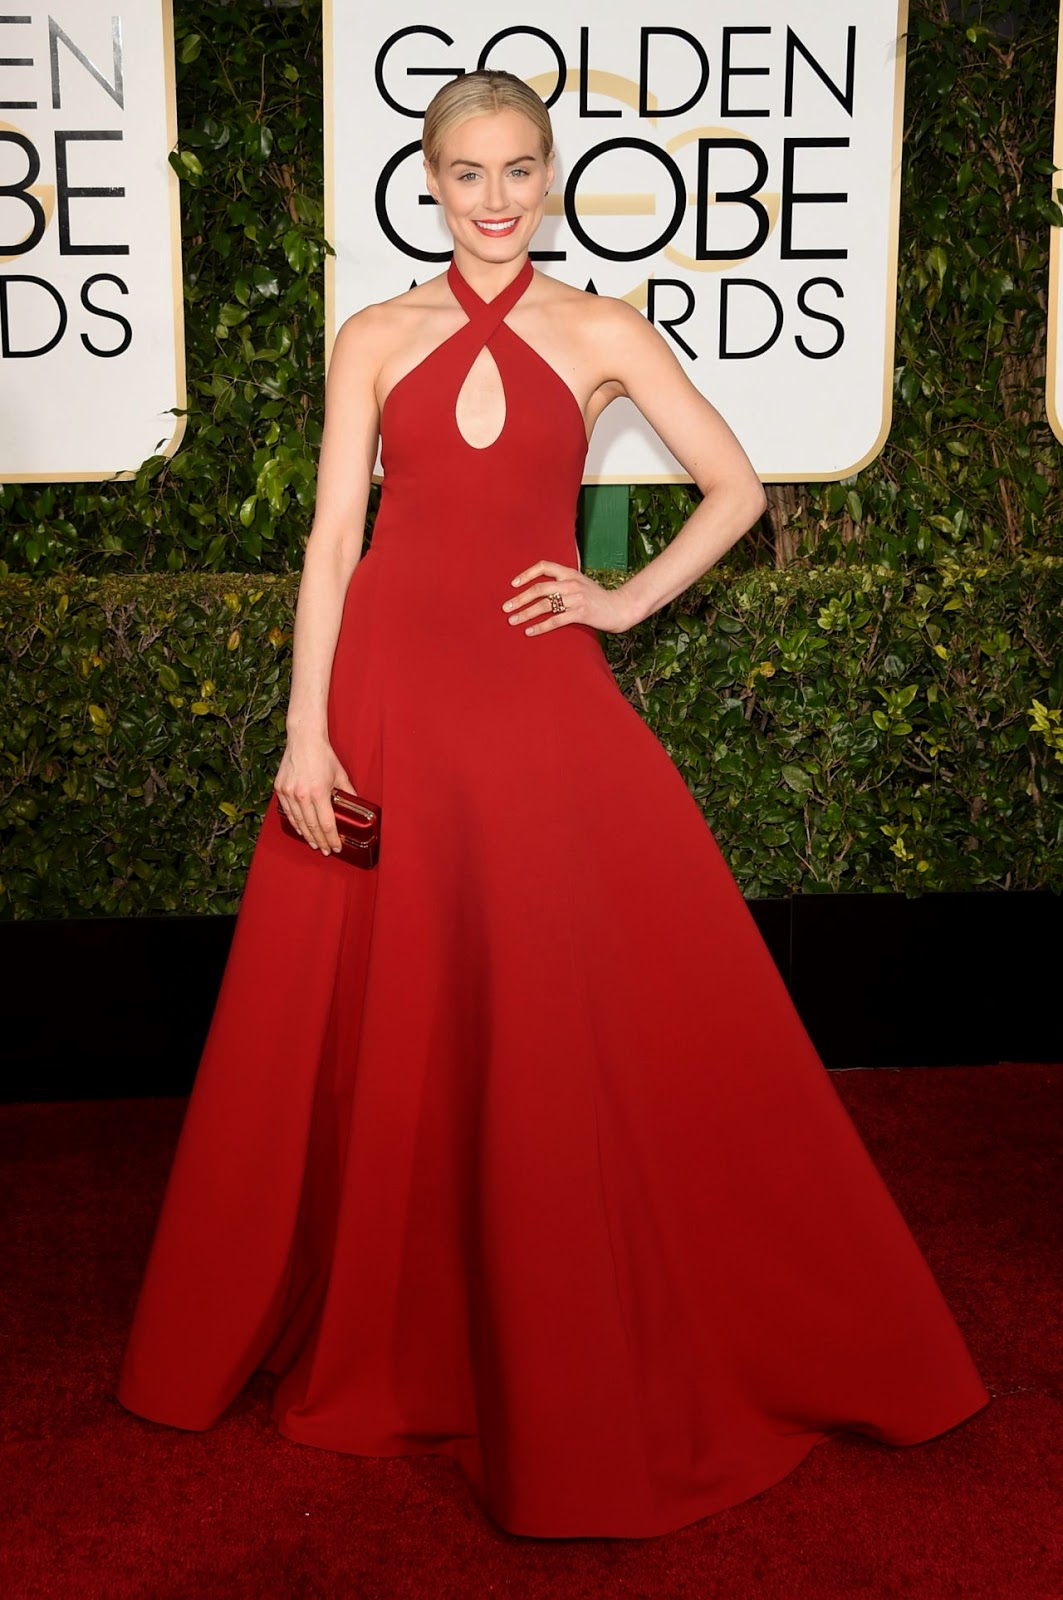 Taylor Schilling dazzles in a scarlet Ralph Lauren gown at the 2015 Golden Globes